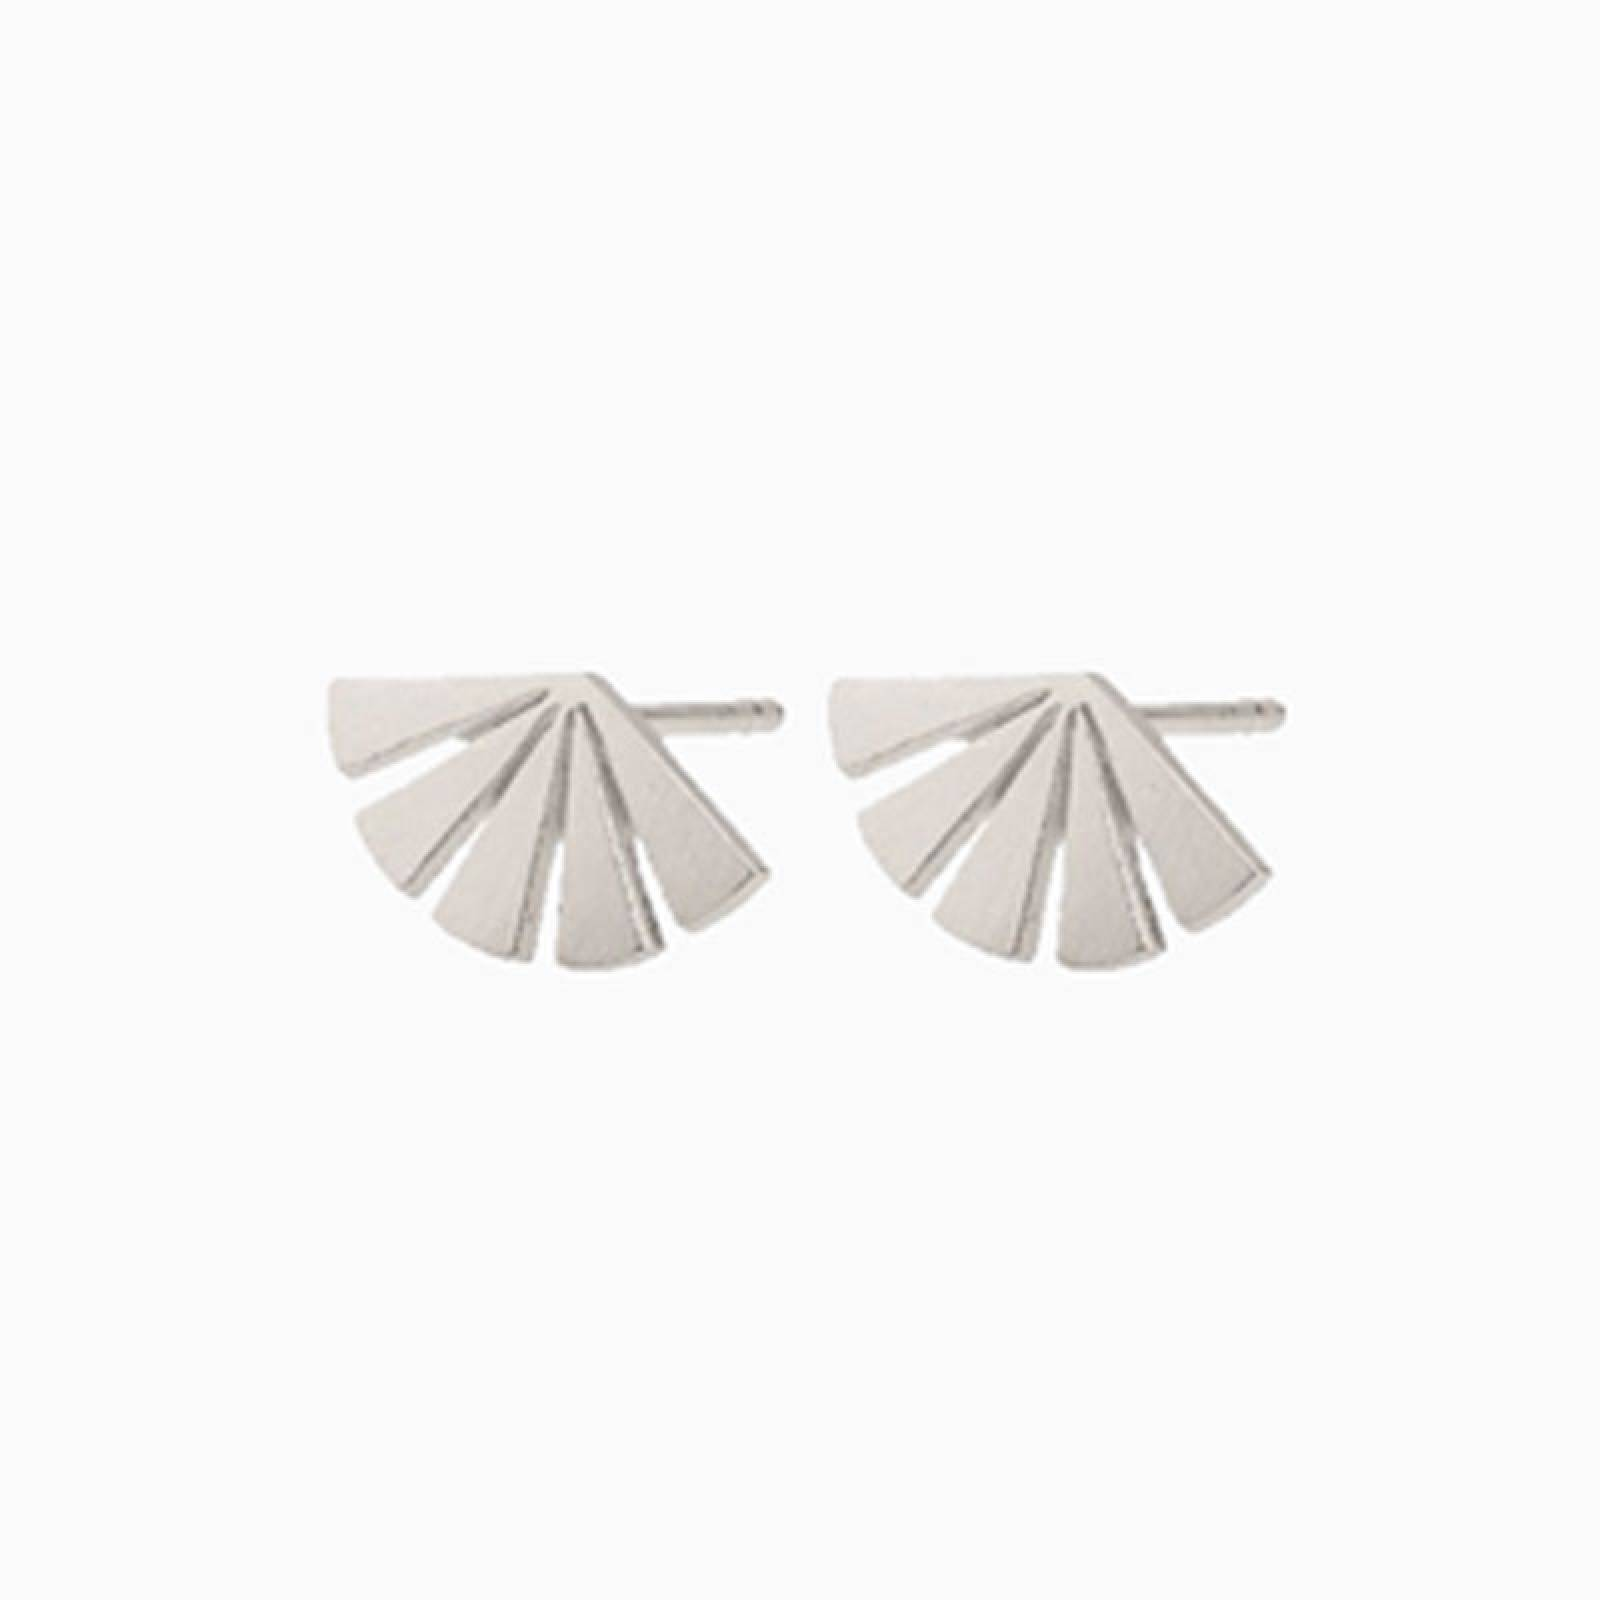 Dawn Stud Earrings In Silver By Pernille Corydon